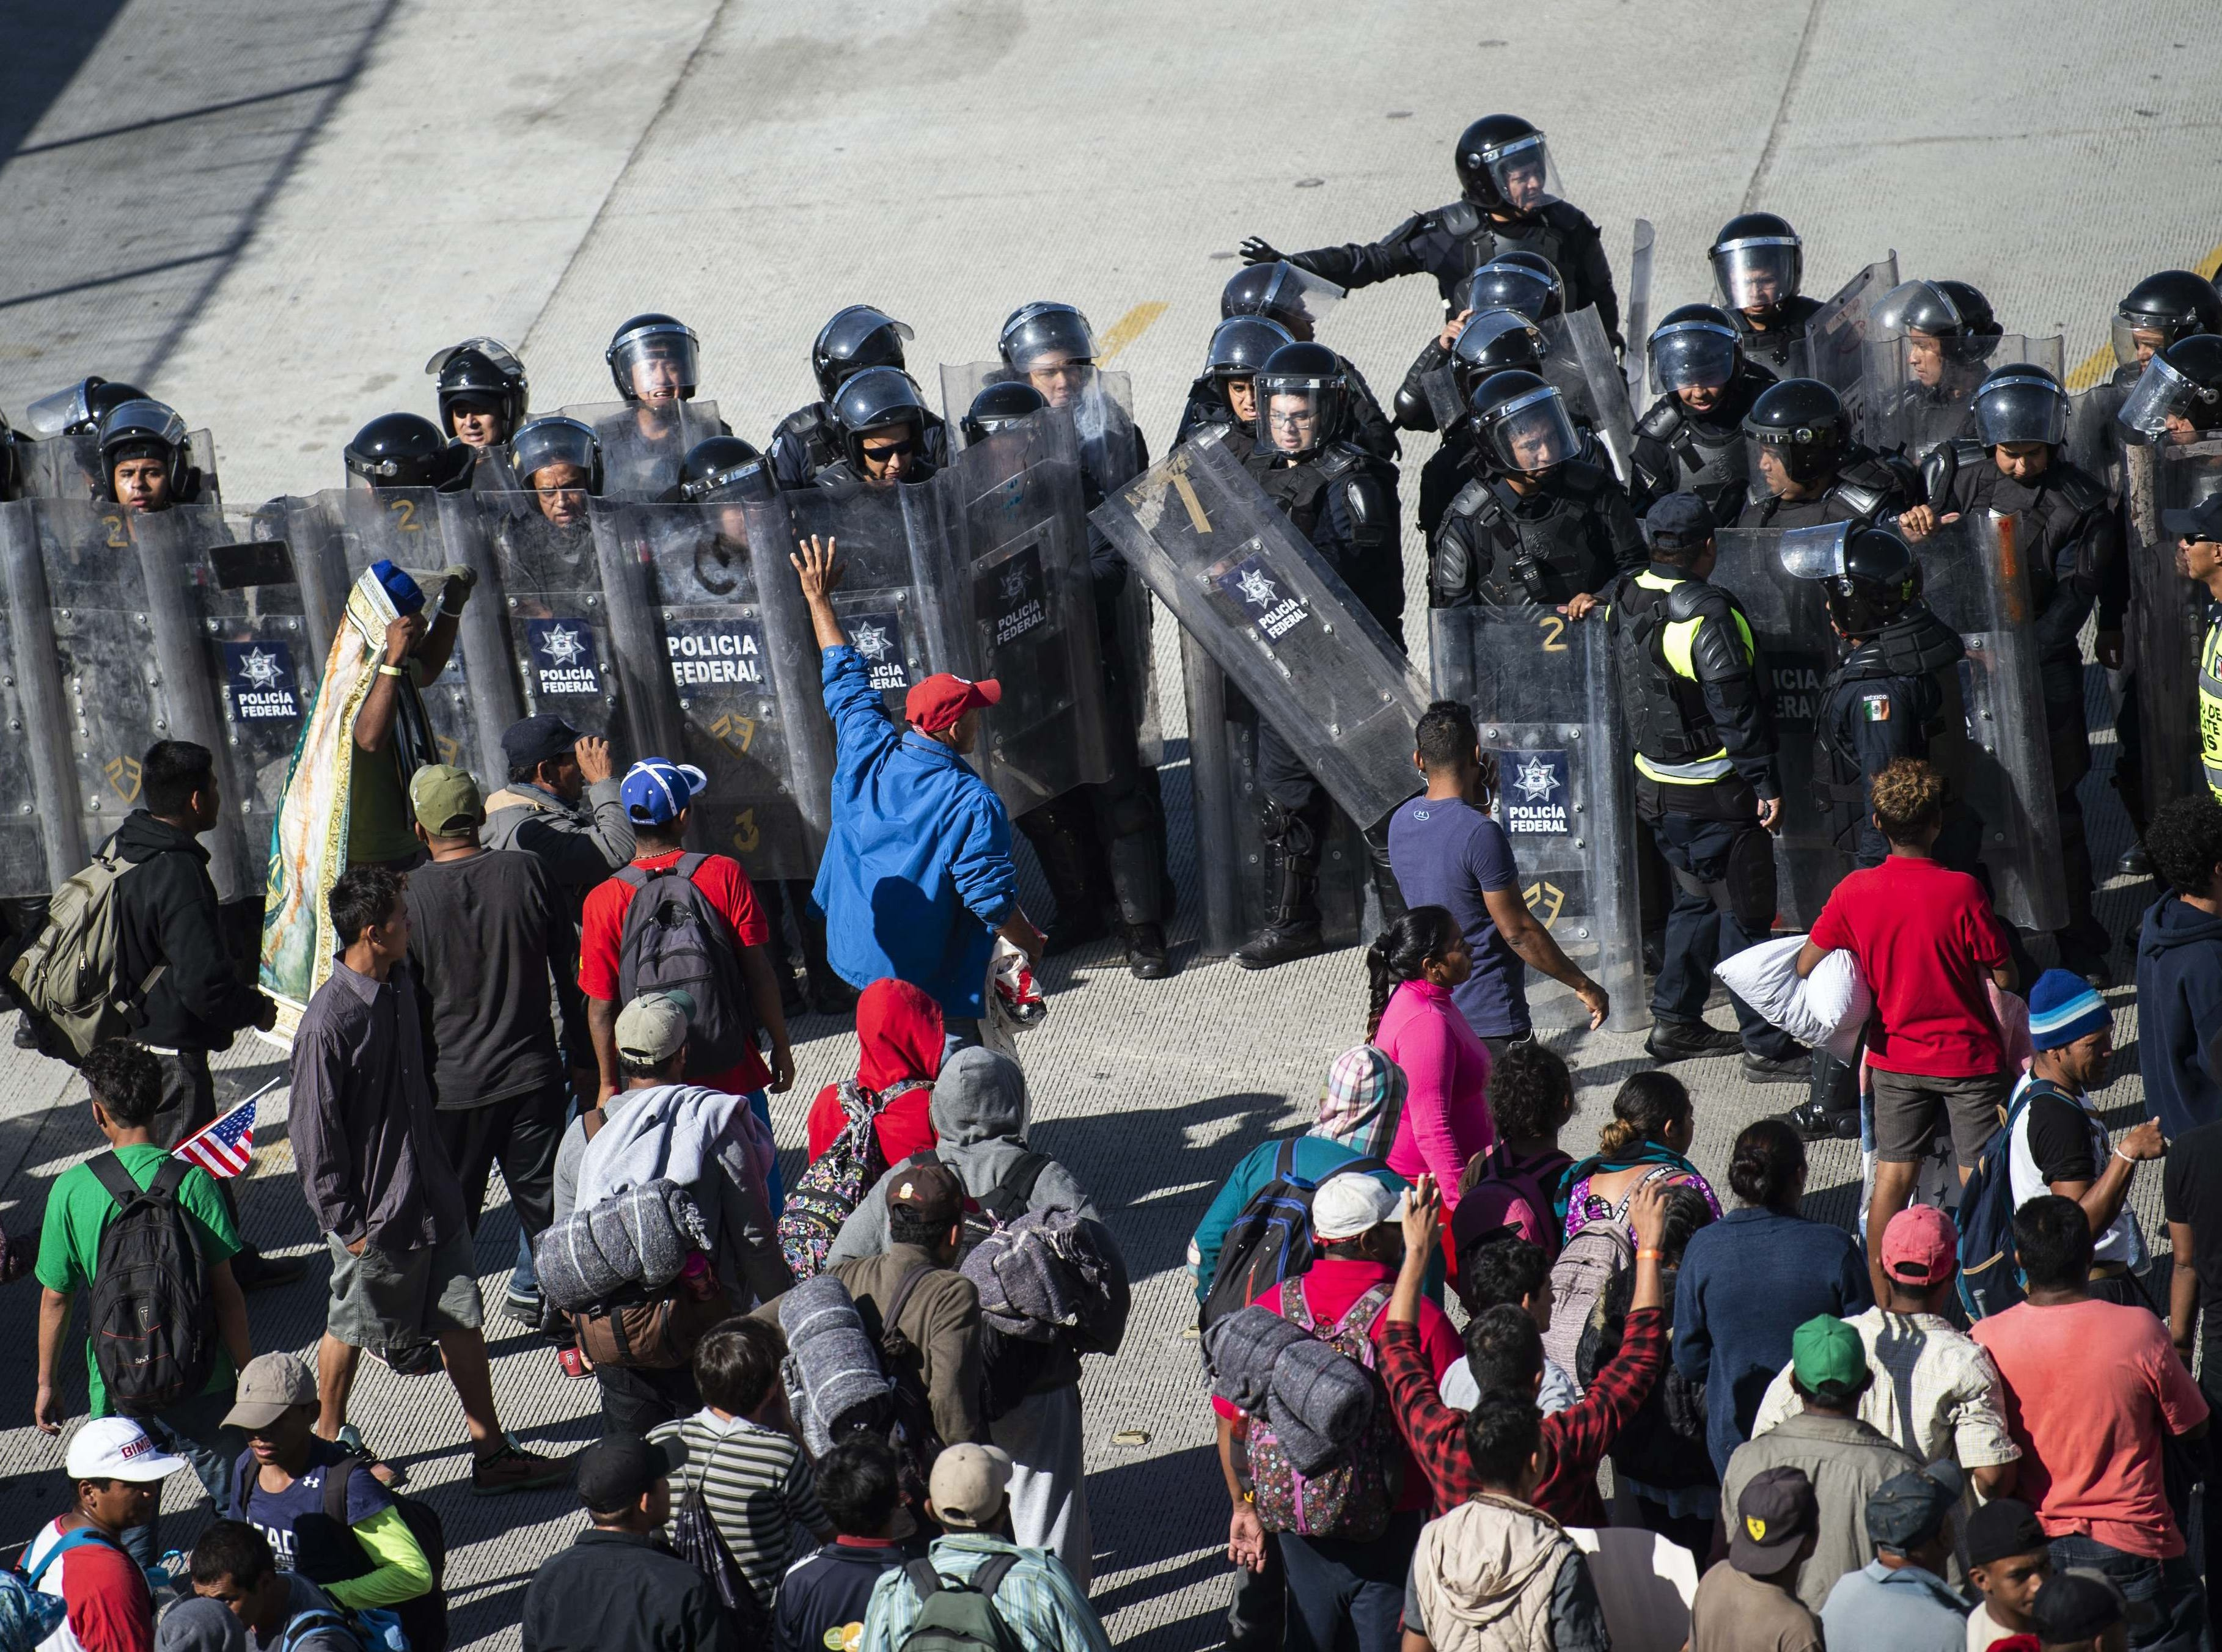 Central American migrants -- mostly Hondurans -- are blocked by Mexican police as they reach the El Chaparral border crossing, in Tijuana, Baja California State, Mexico, on November 25, 2018. - Hundreds of migrants attempted to storm a border fence separating Mexico from the U.S. on Sunday amid mounting fears they will be kept in Mexico while their applications for asylum are processed. An AFP photographer said the migrants broke away from a peaceful march at a border bridge and tried to climb over a metal border barrier in the attempt to enter the United States.